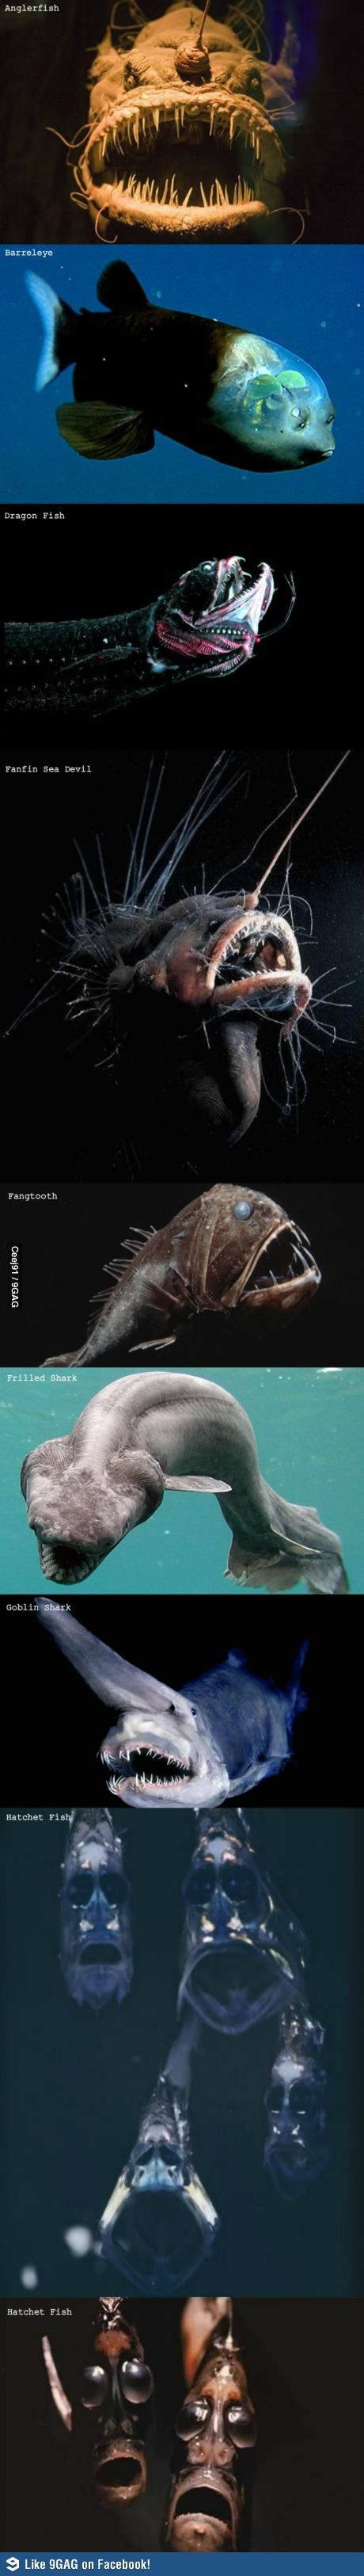 Creatures from the Mariana Trench.